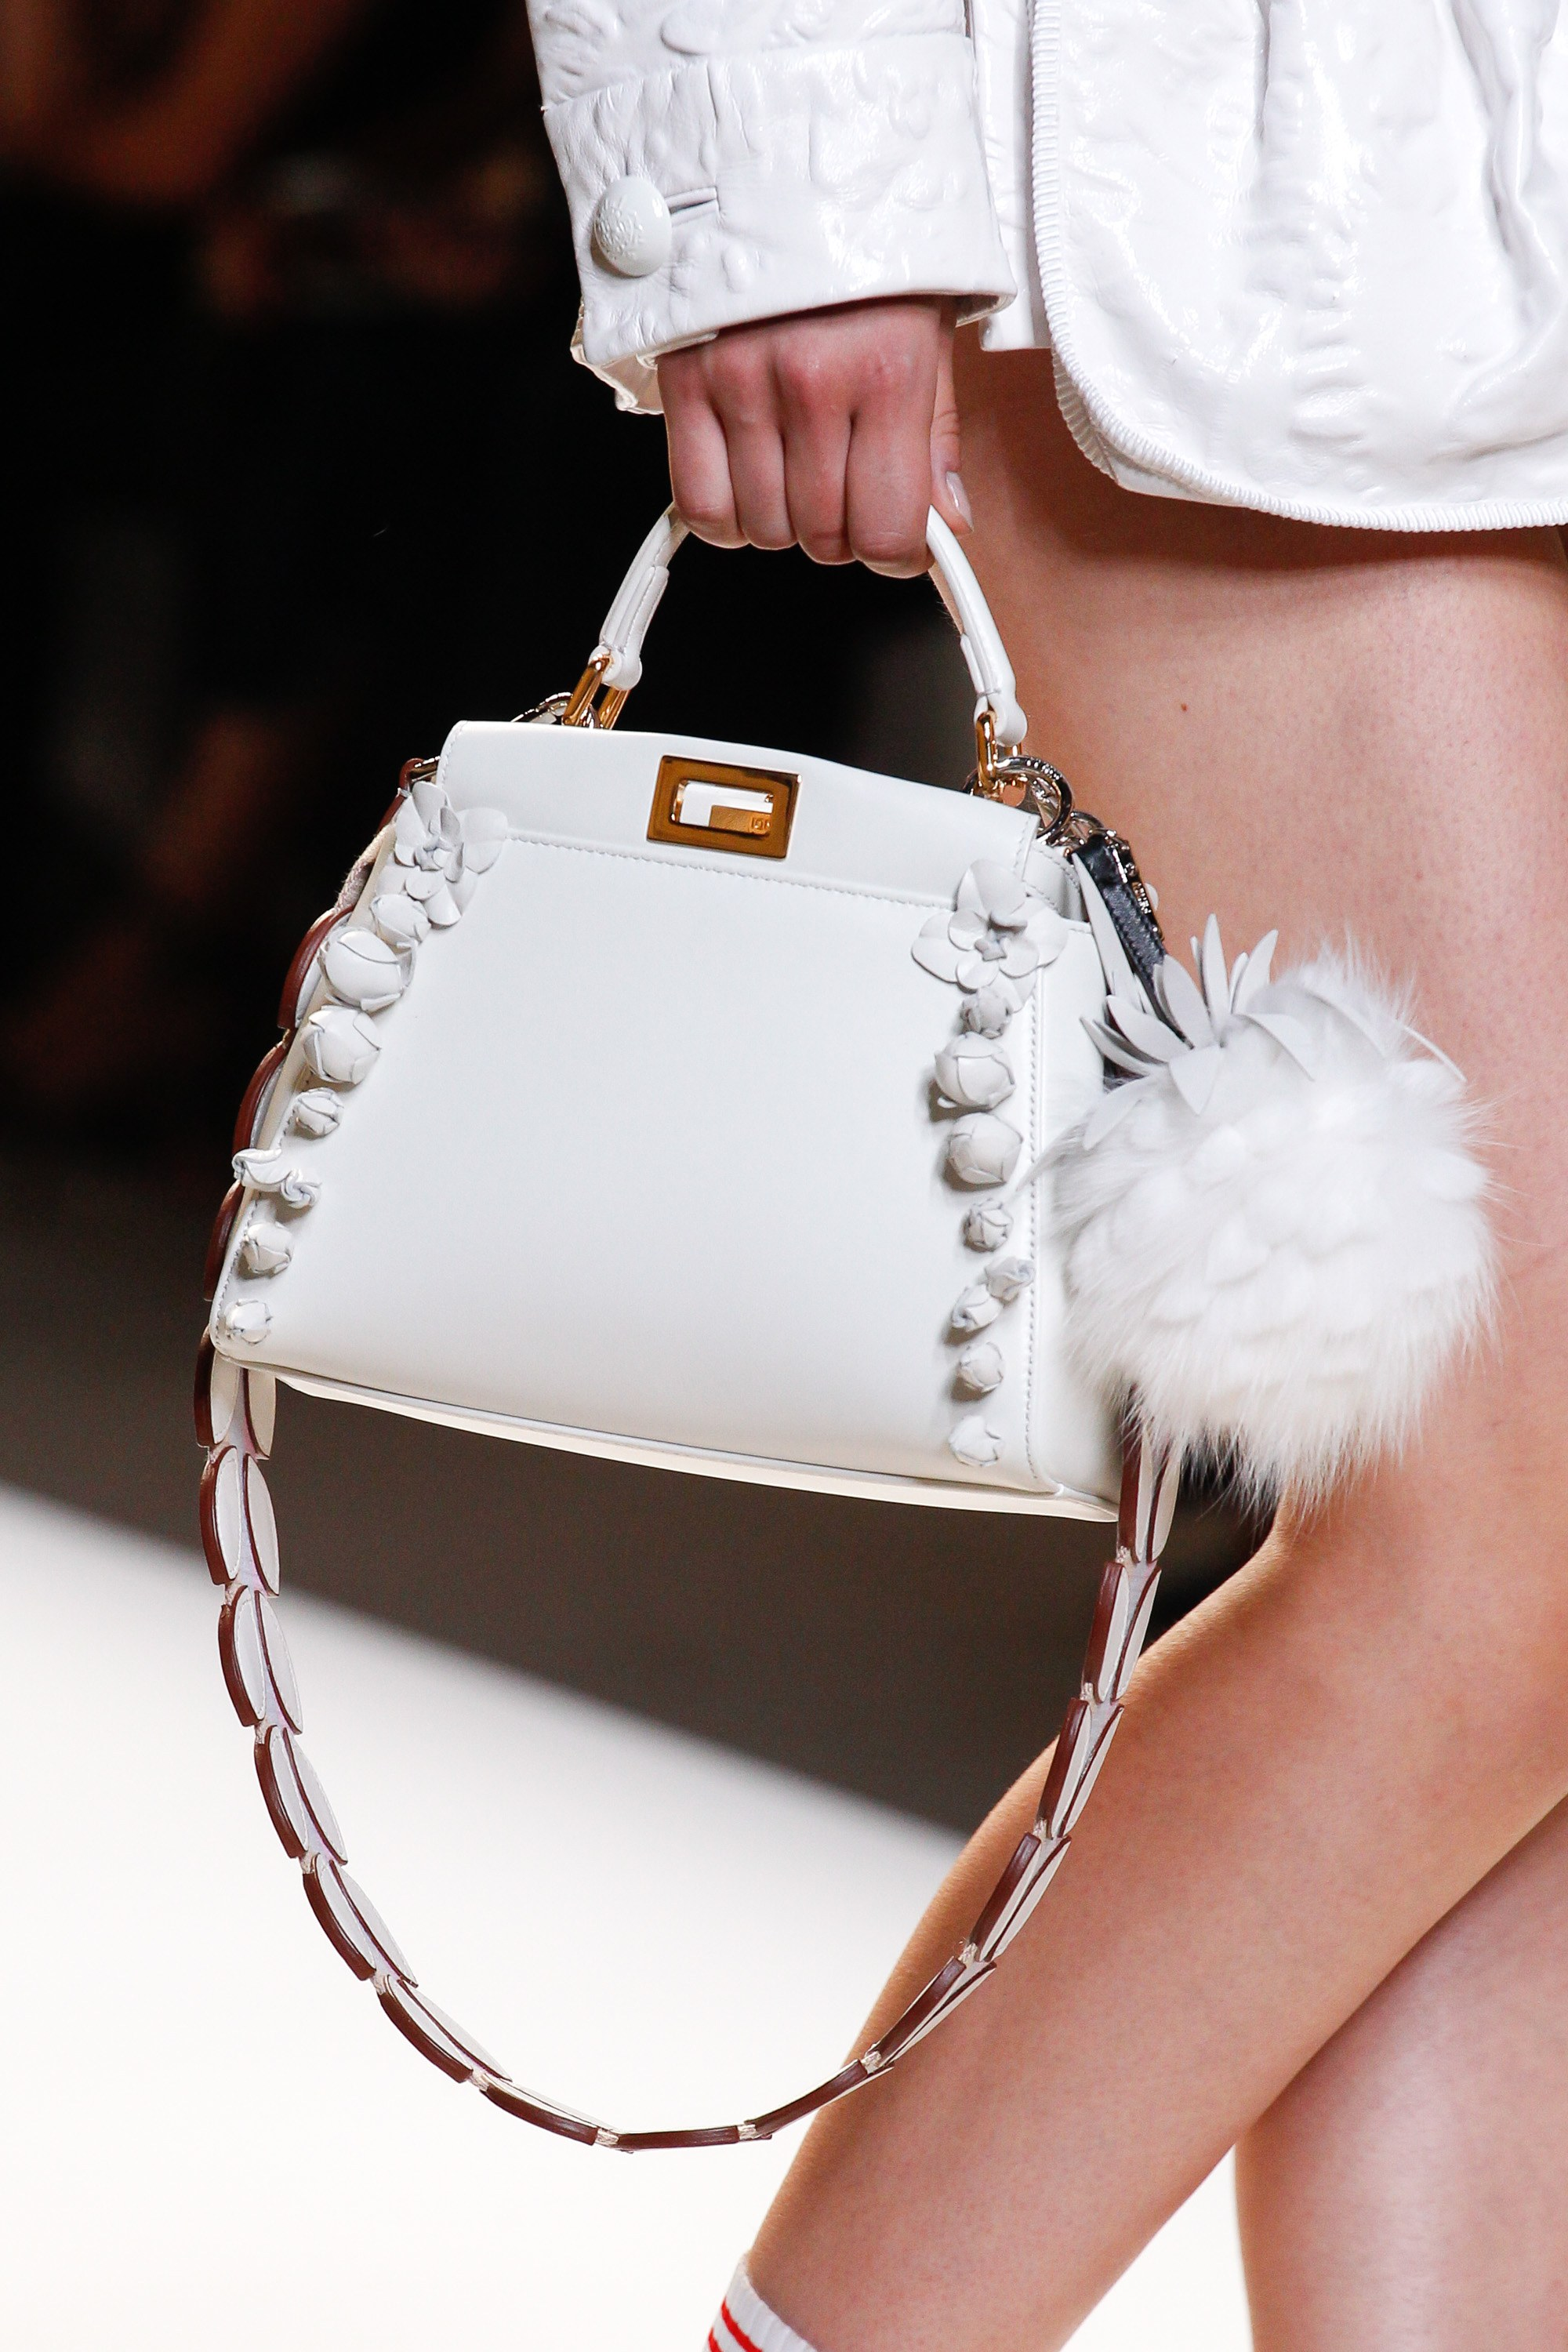 Fendi spring summer 2015 runway bag collection spotted fashion - Fendi White Peekaboo Bag Spring 2017